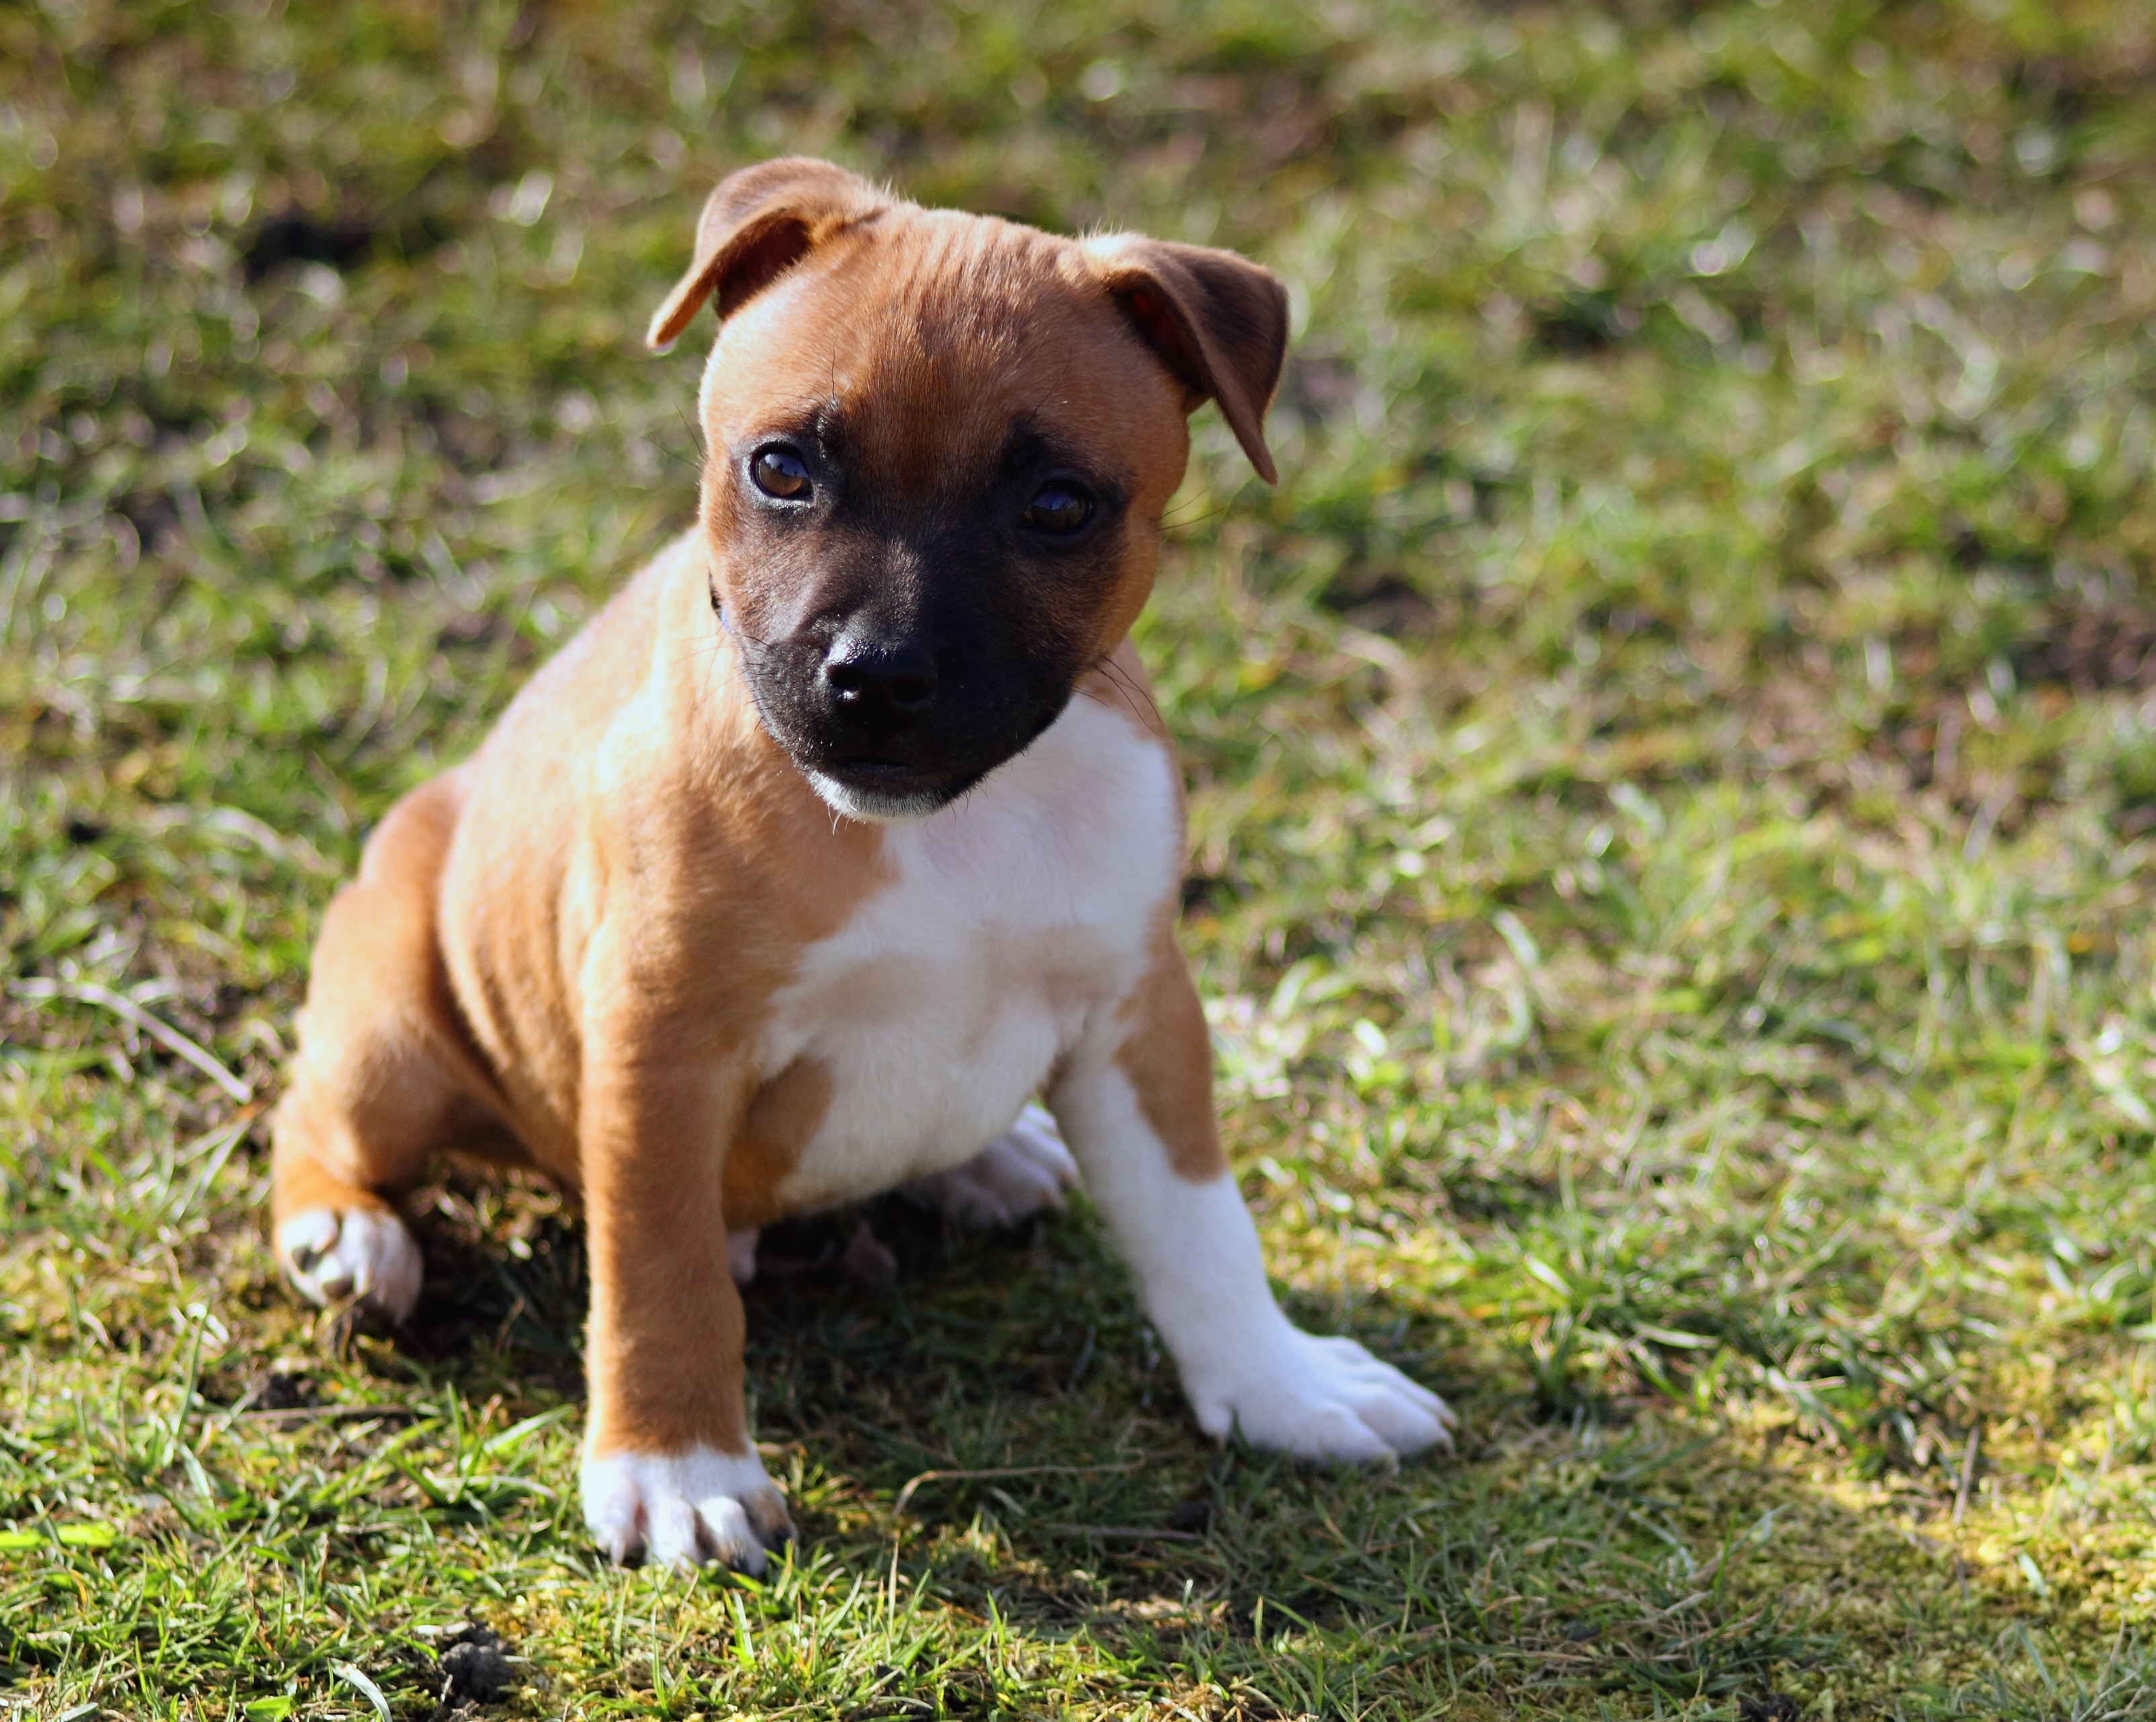 Stafford-Shire Bull-terrier Puppy, Animals, Pets, Sweet, Staffordshire, HQ Photo